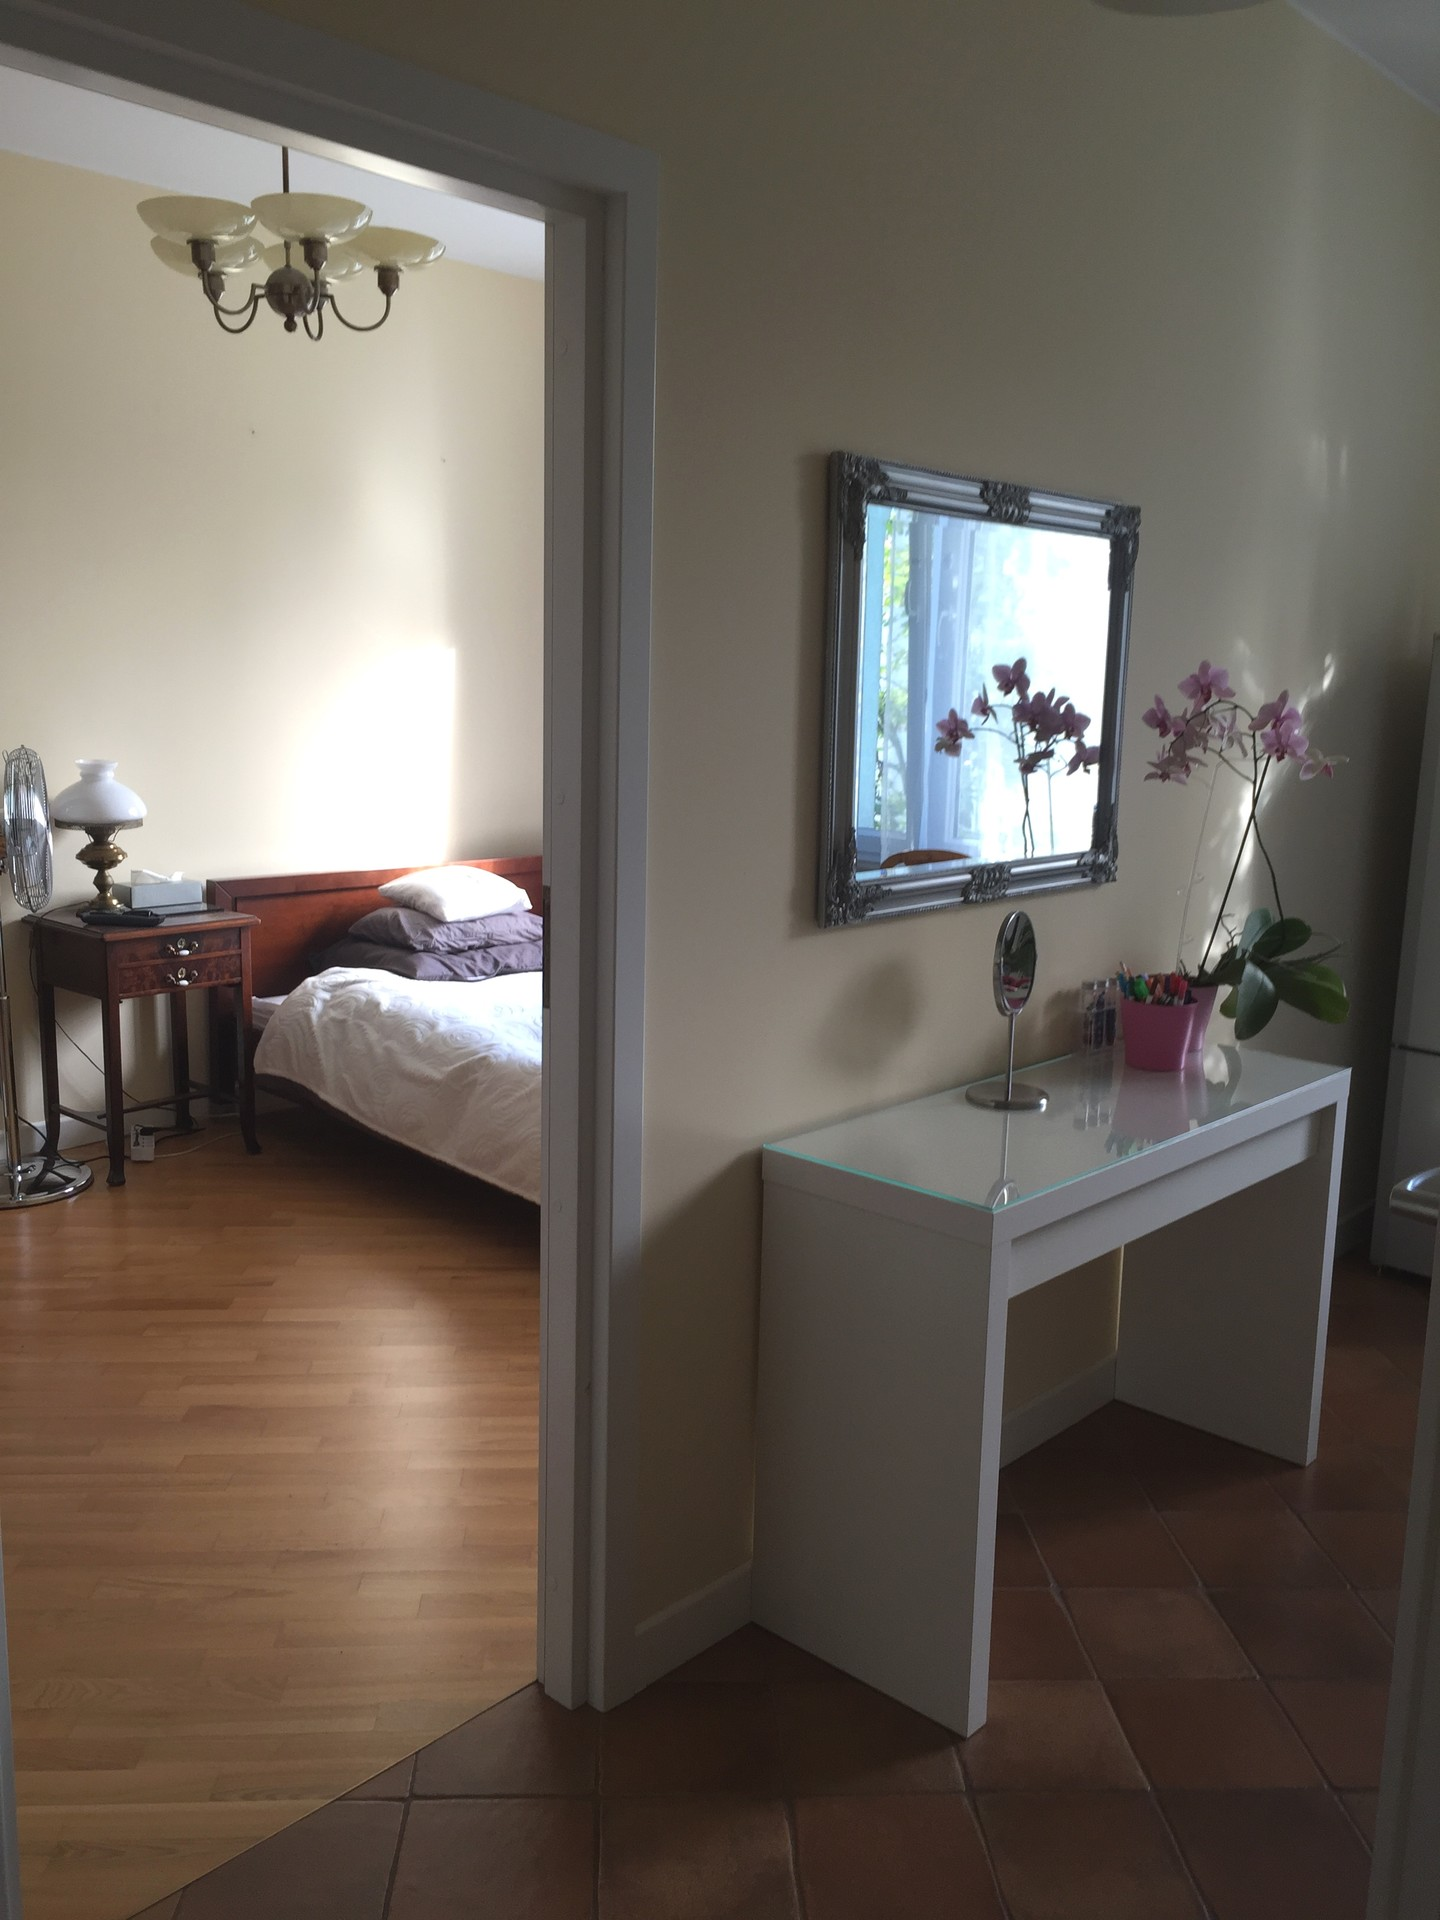 Rooms: Nice Apartment With Two Rooms, 50 M2. Quick And Easy